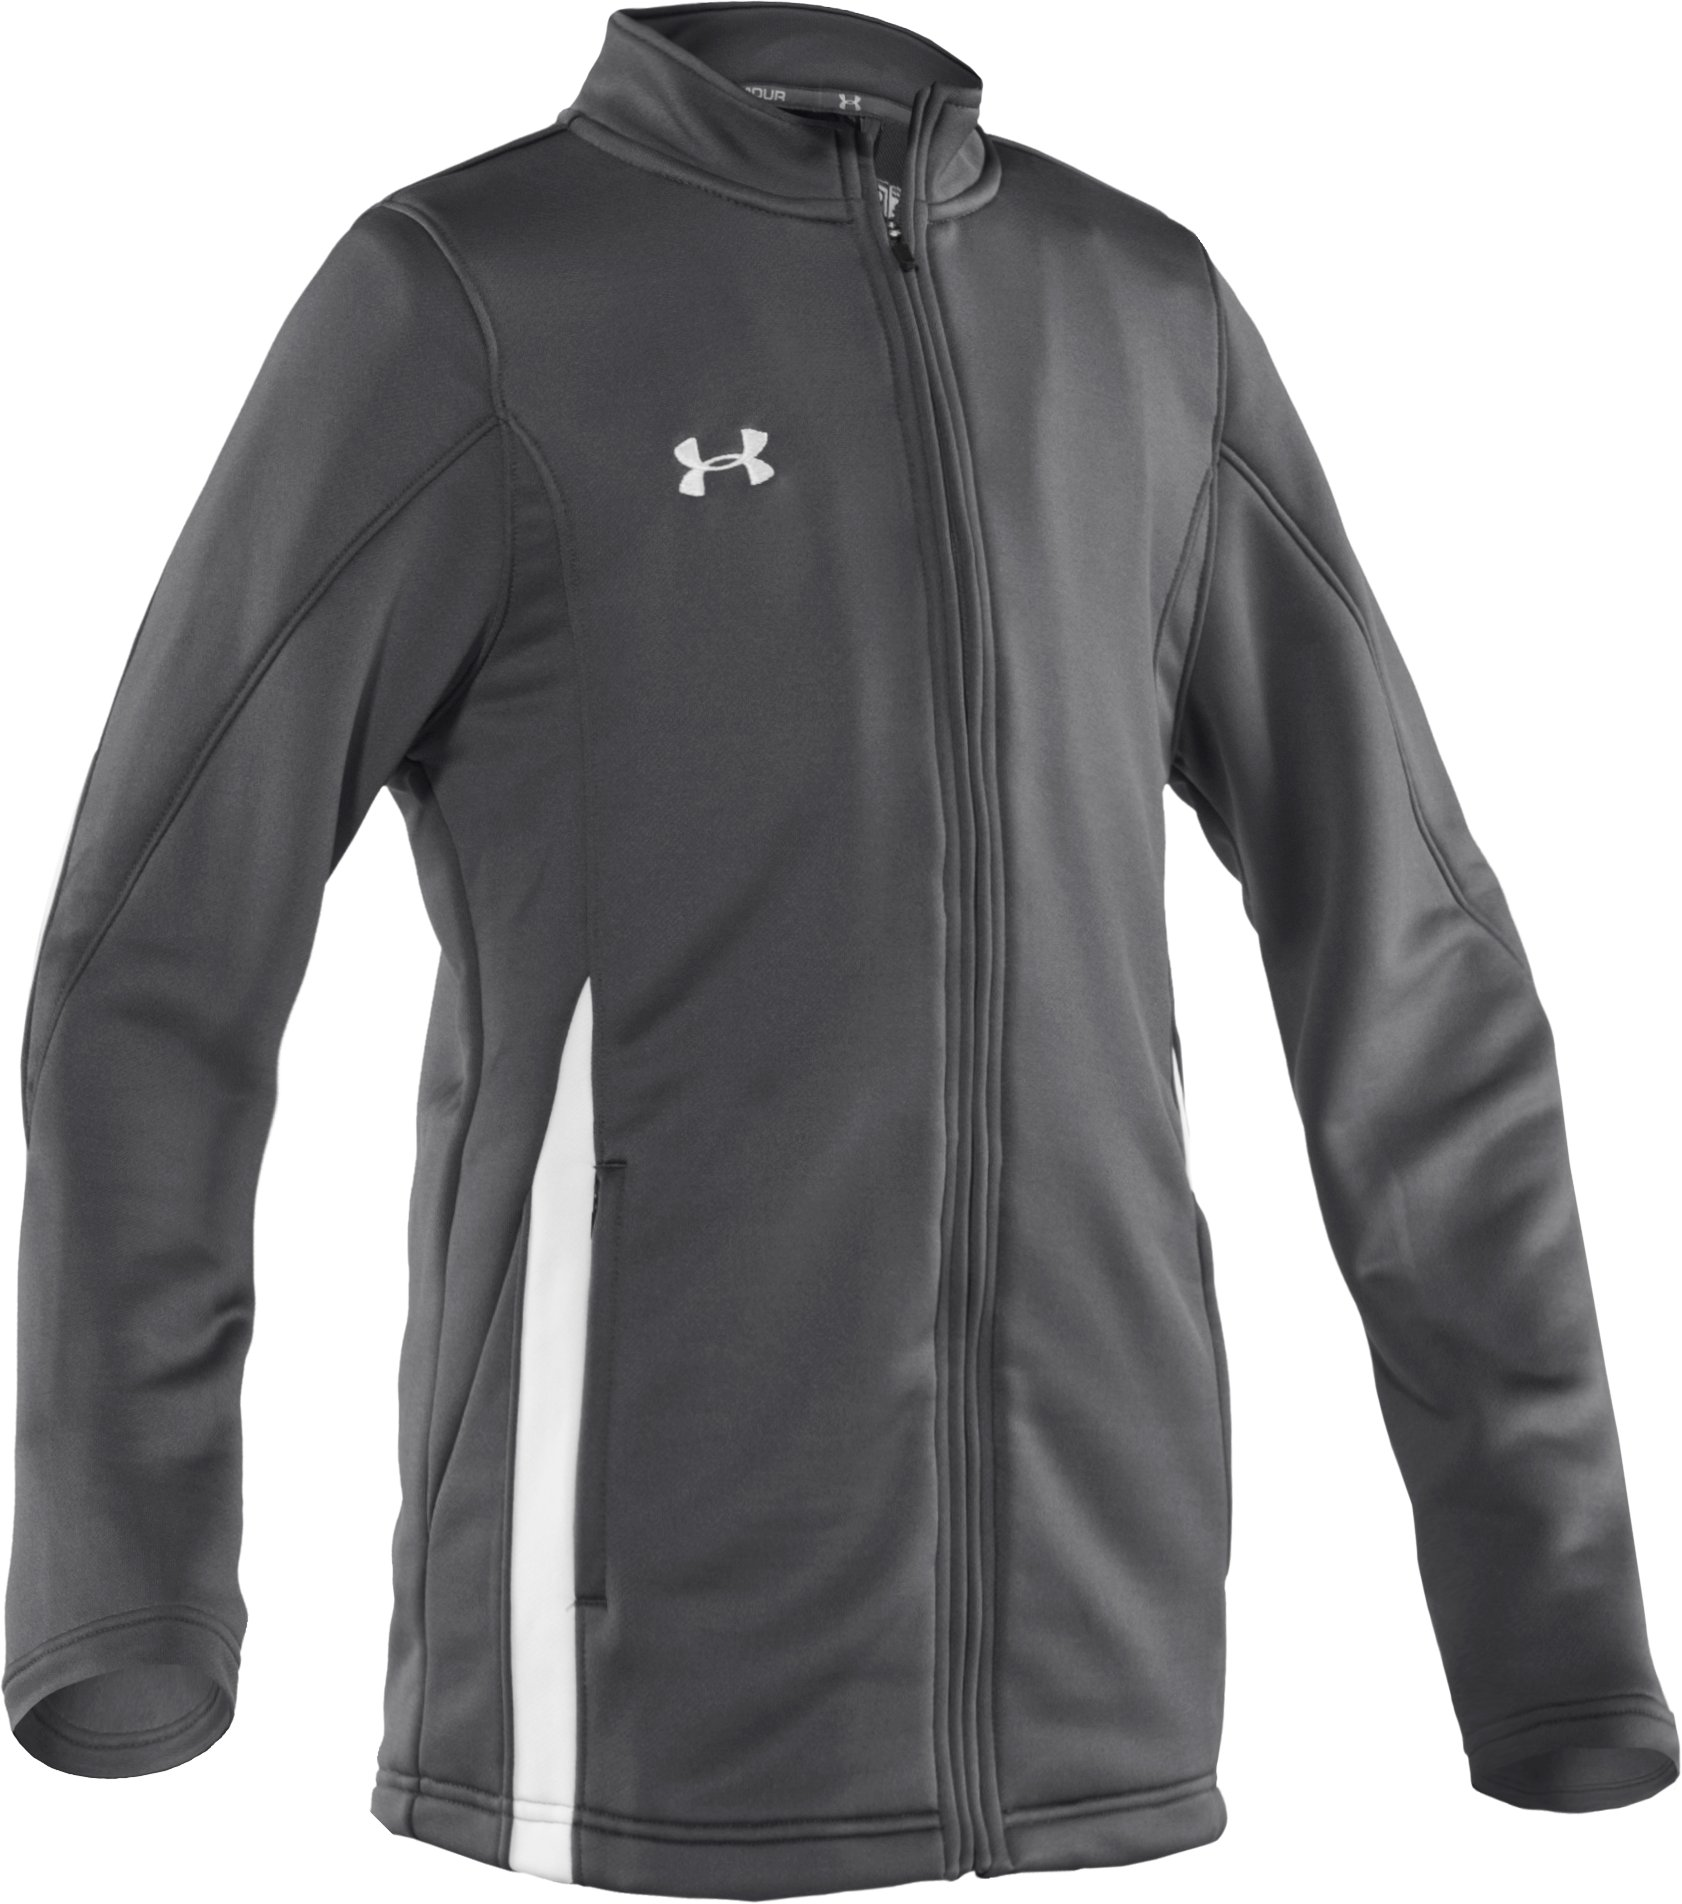 Boys' UA Classic Knit Warm-Up Jacket, Graphite, zoomed image